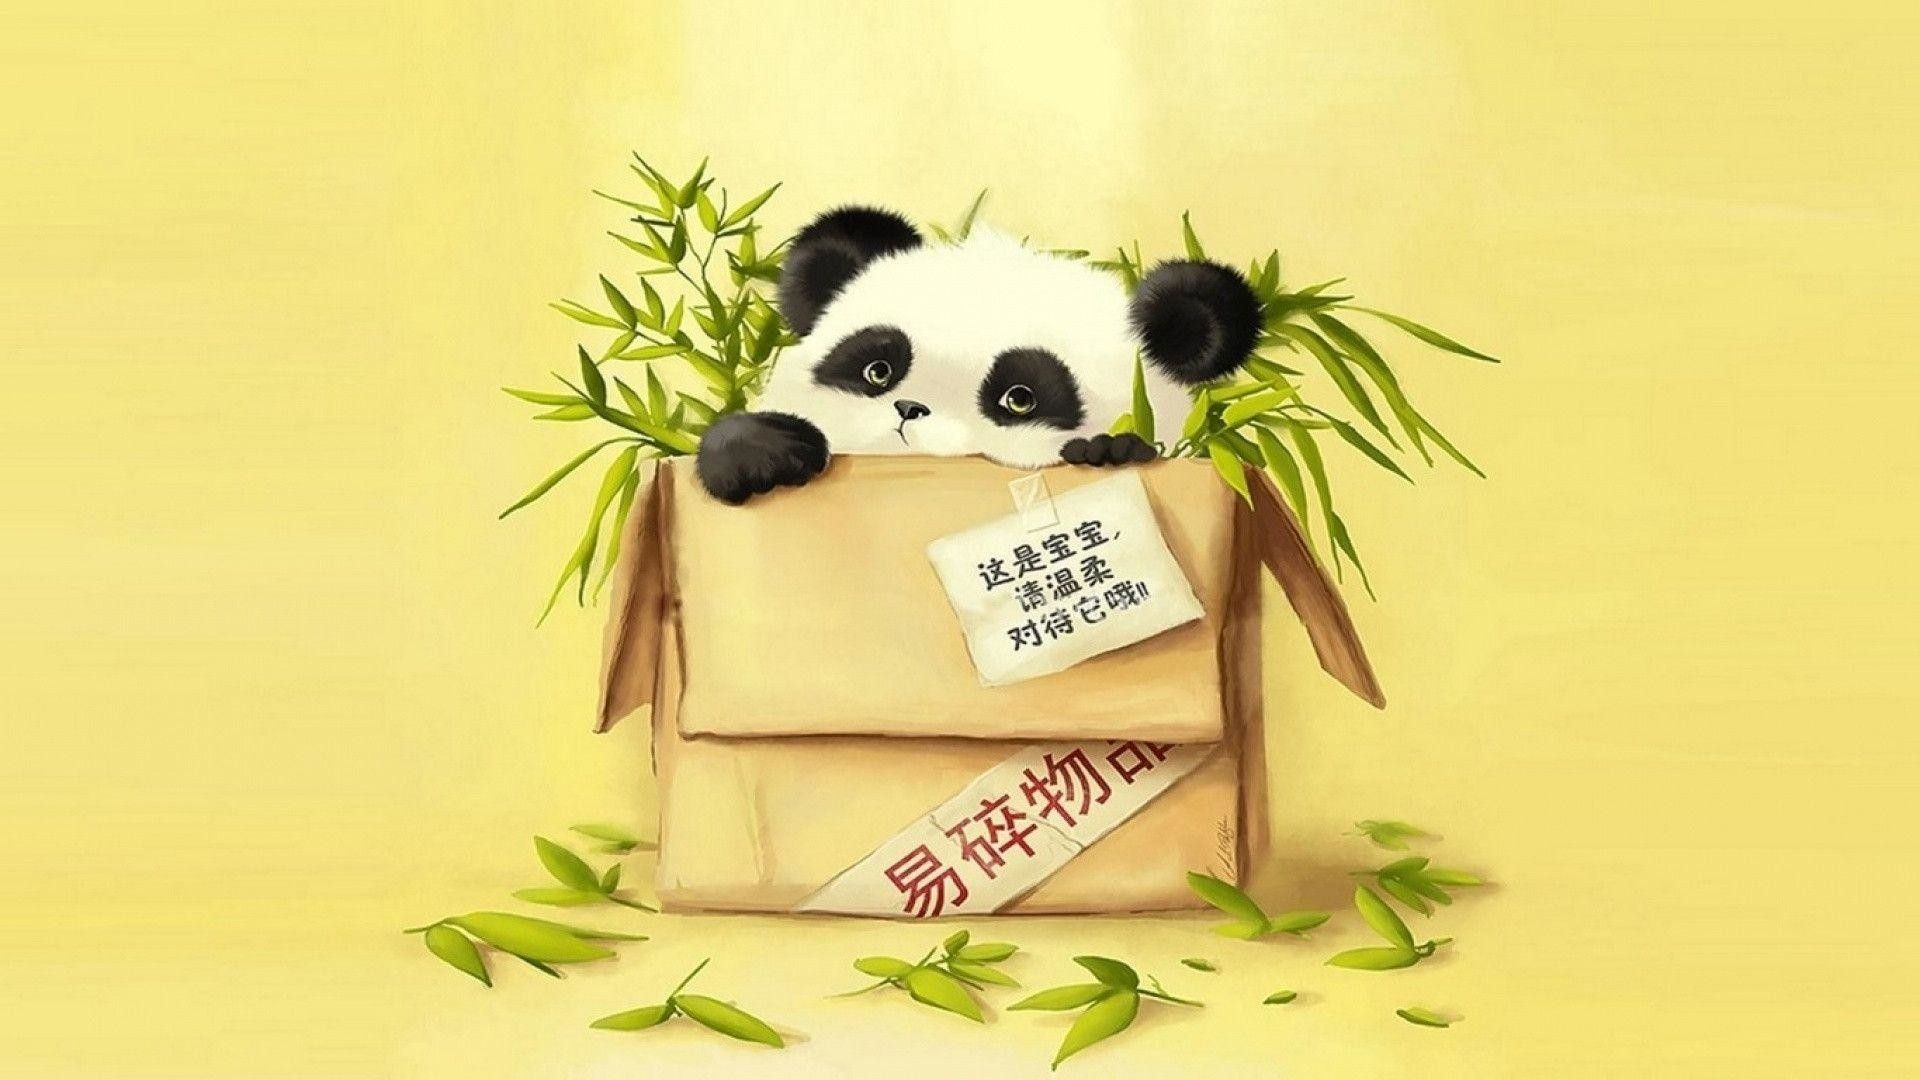 Cartoon Panda Wallpapers (77+ images)